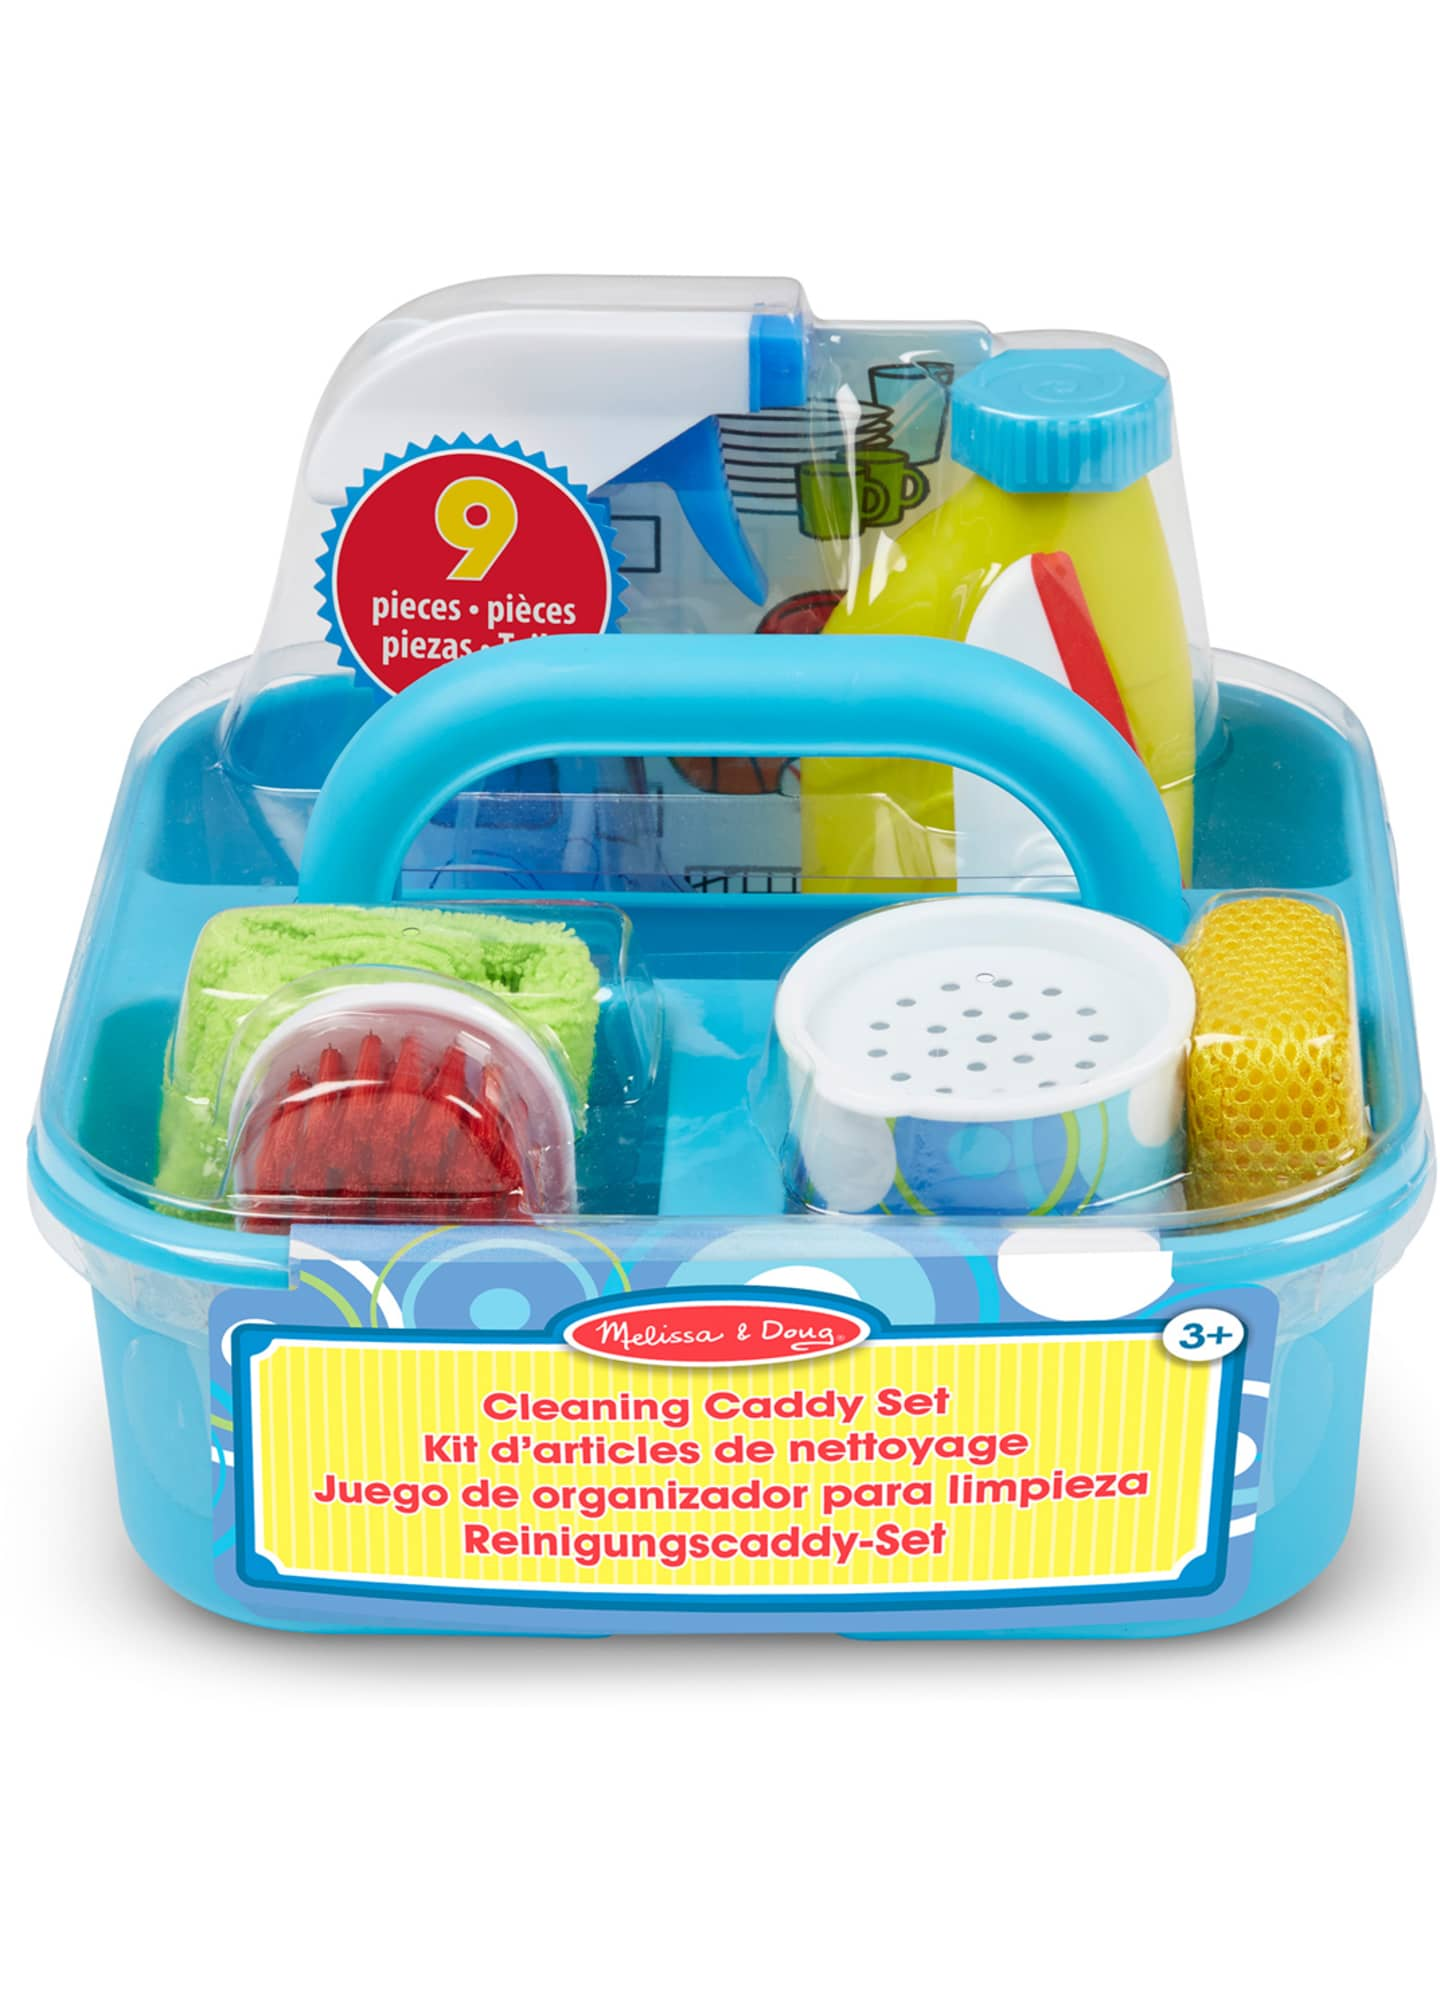 Image 2 of 2: Let's Play House Spray, Squirt & Squeegee Play Set